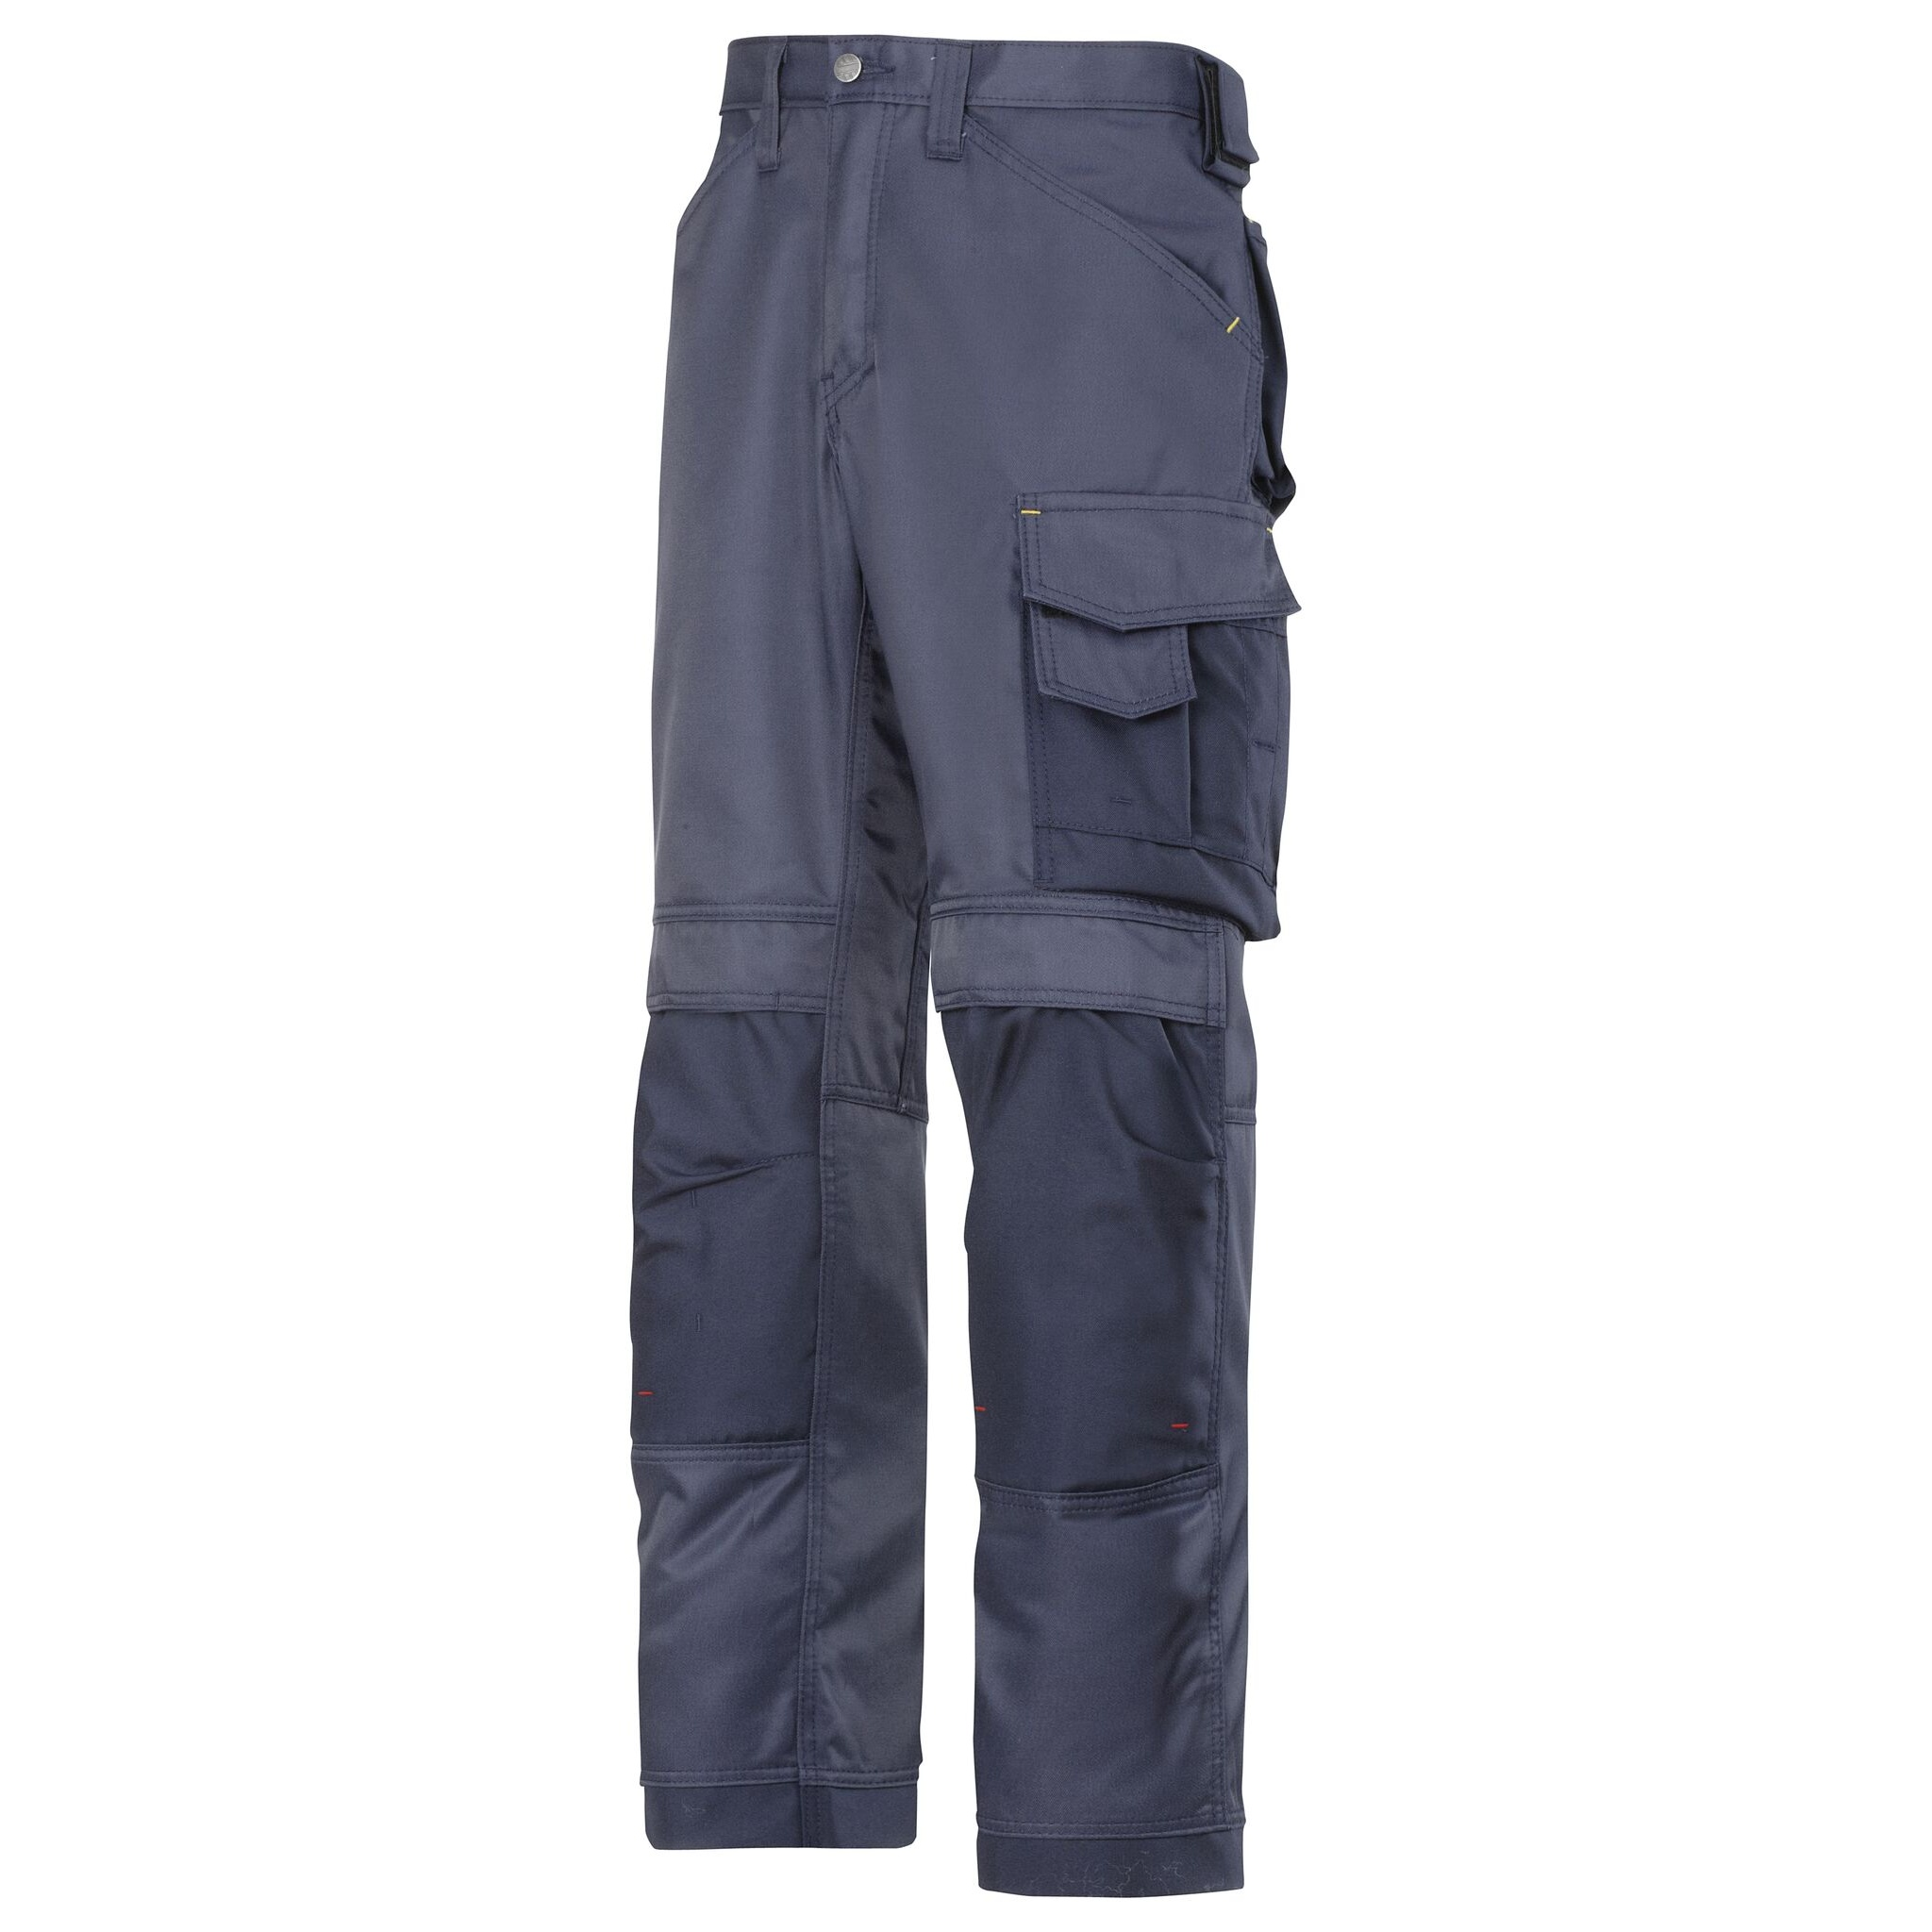 Snickers Mens DuraTwill Craftsmen Non Holster Trousers (31R) (Navy/Black)